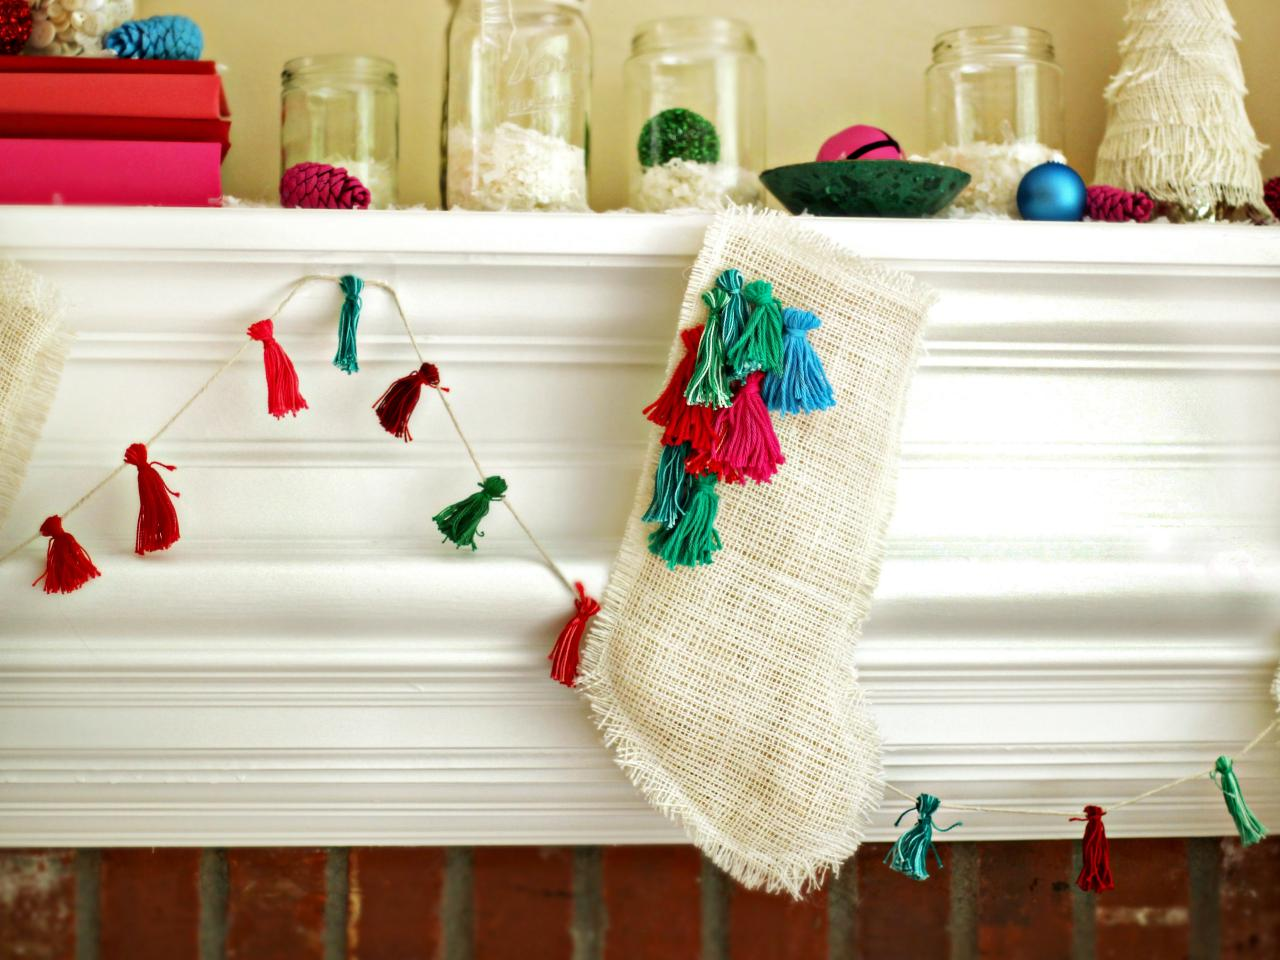 Personalized Diy Christmas Stockings Ideas Elly 39 S Diy Blog